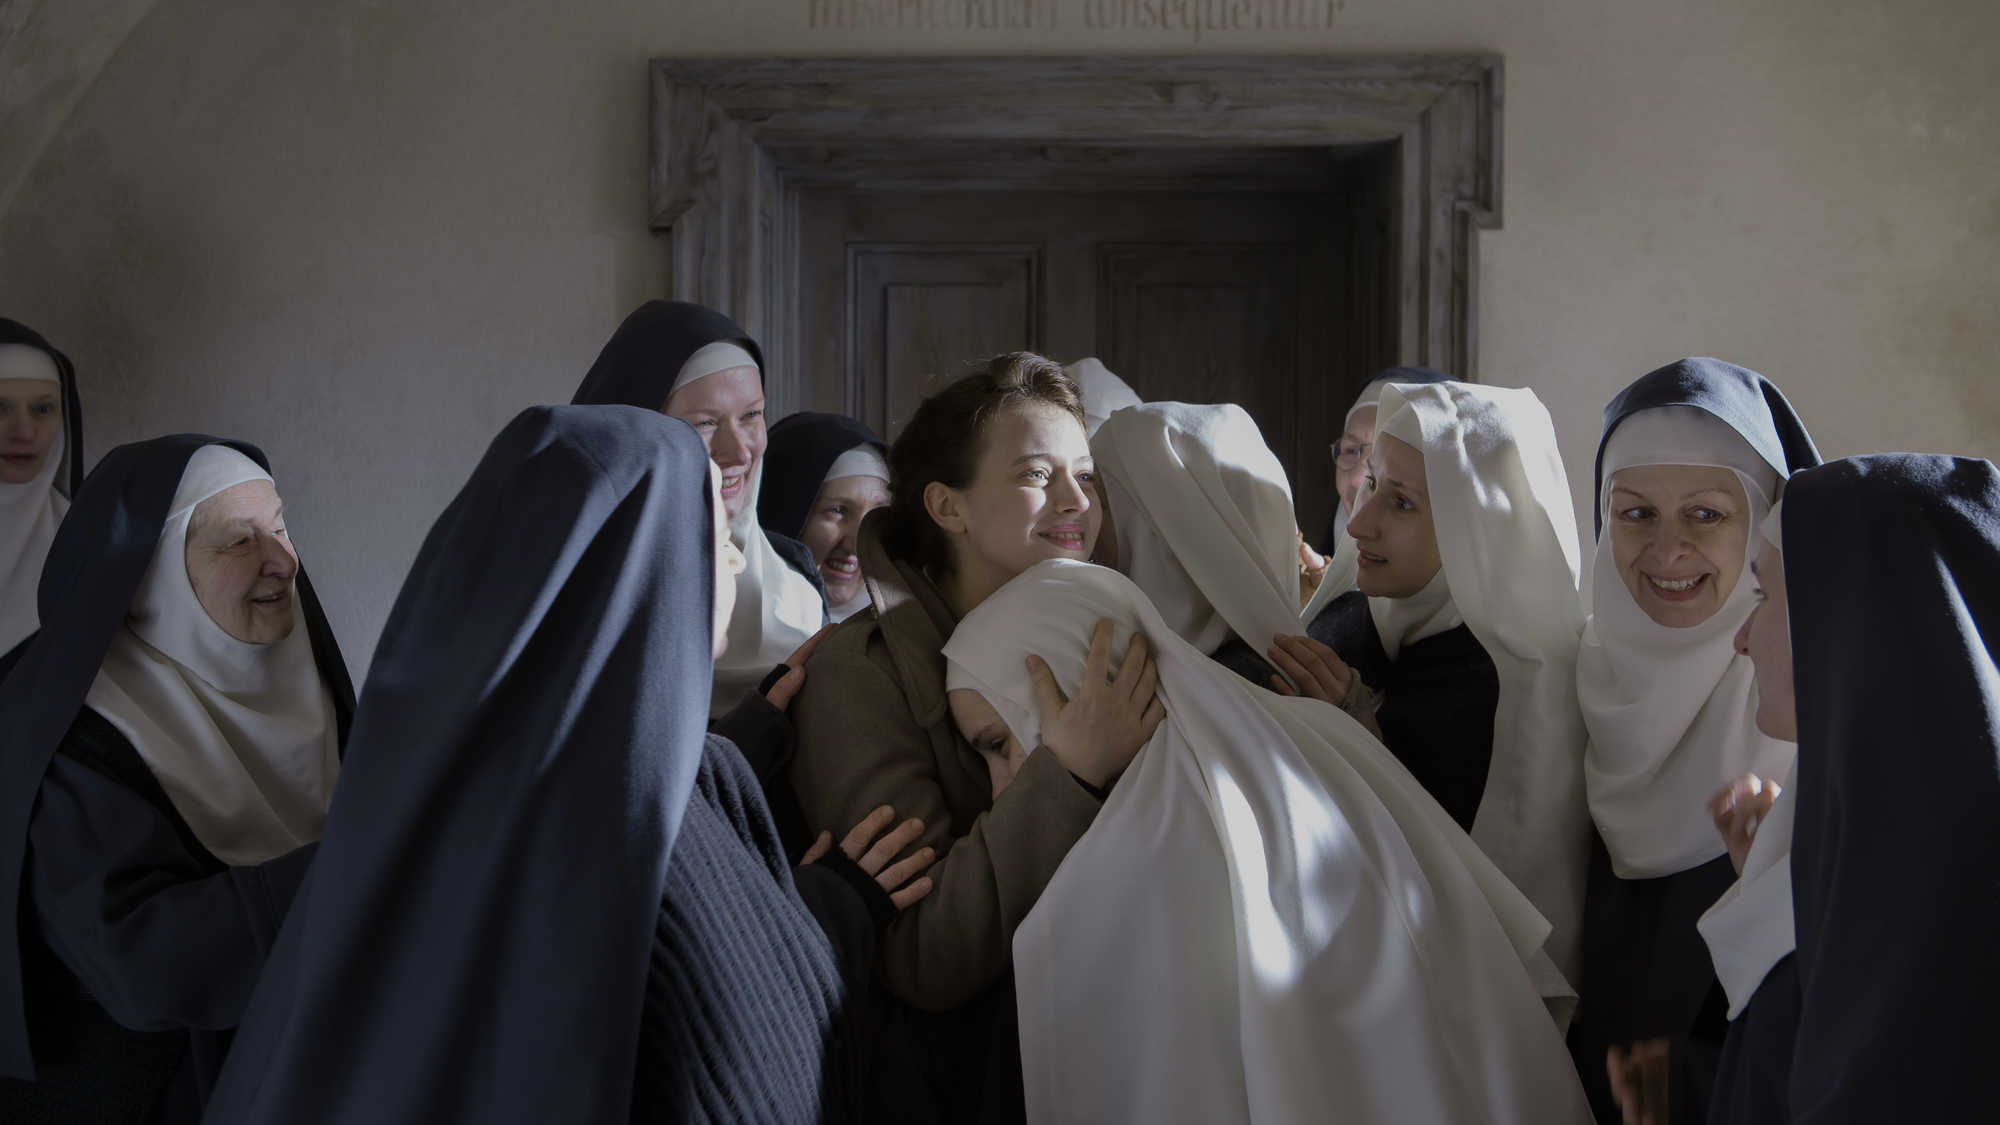 The Innocents (image 1)